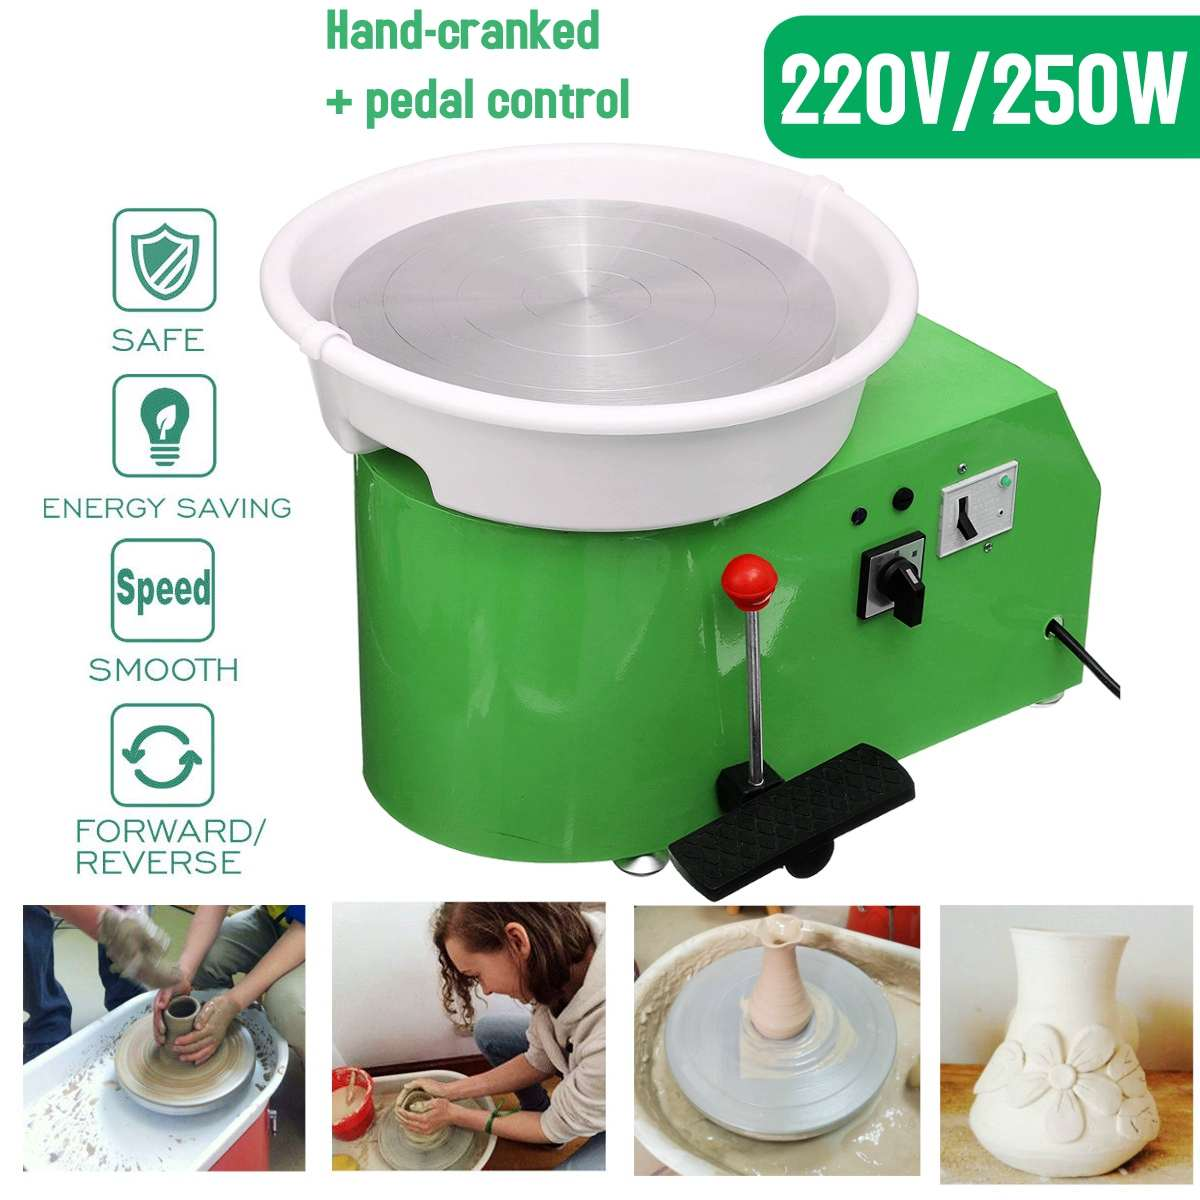 Pottery Wheel Machine 32cm 220V 250W Hand-cranked pedal control peda Ceramic Work Clay Art With Mobile Smooth Low NoisePottery Wheel Machine 32cm 220V 250W Hand-cranked pedal control peda Ceramic Work Clay Art With Mobile Smooth Low Noise